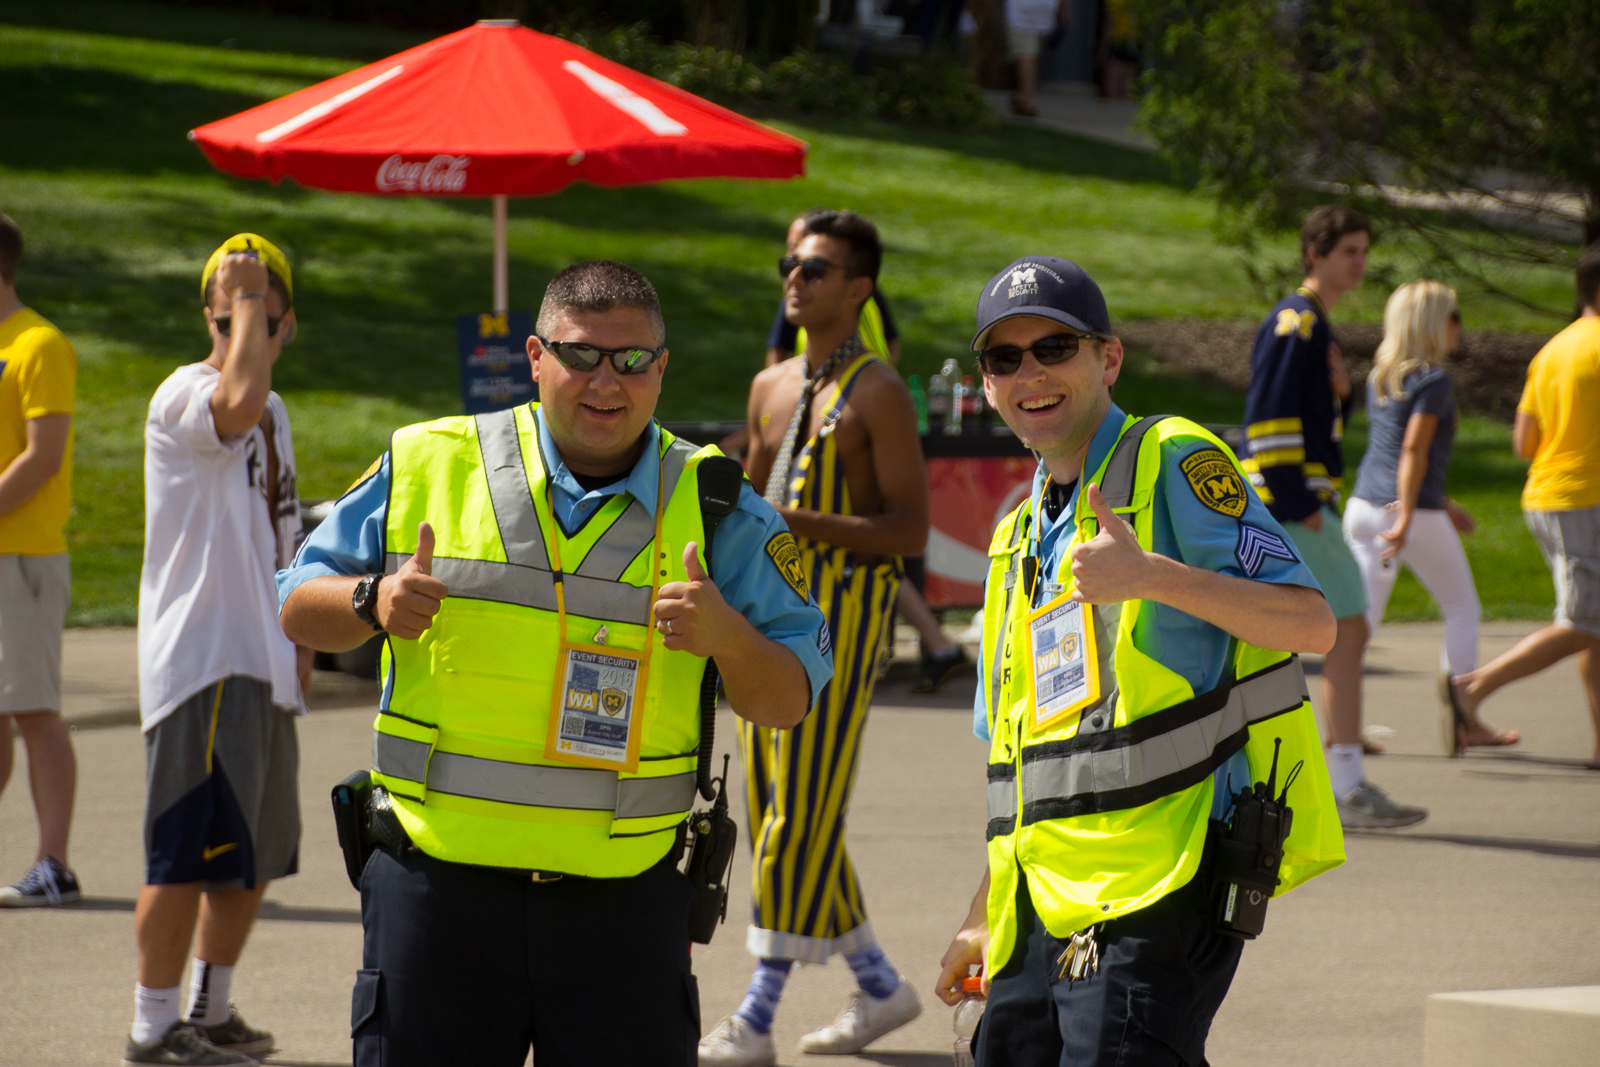 Michigan Medicine Security Sergeant Dillard and Housing Security Sergeant Beers pose for a photo near Gate 10 at Michigan Stadium